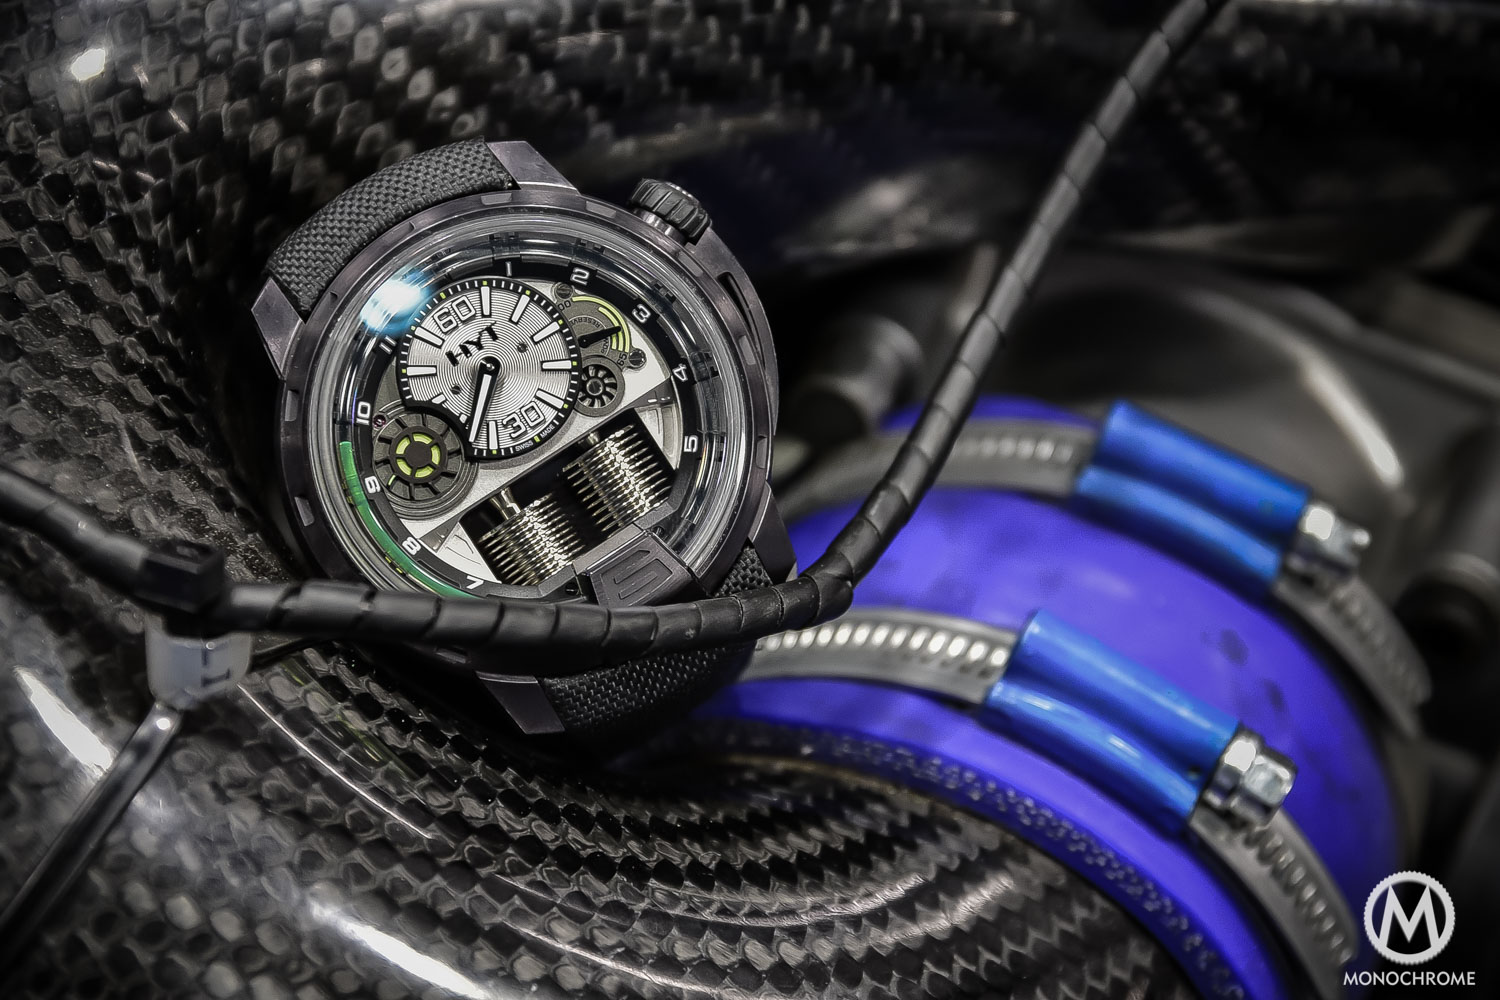 HYT Watches - panis barthez competition - EMLS - Event report